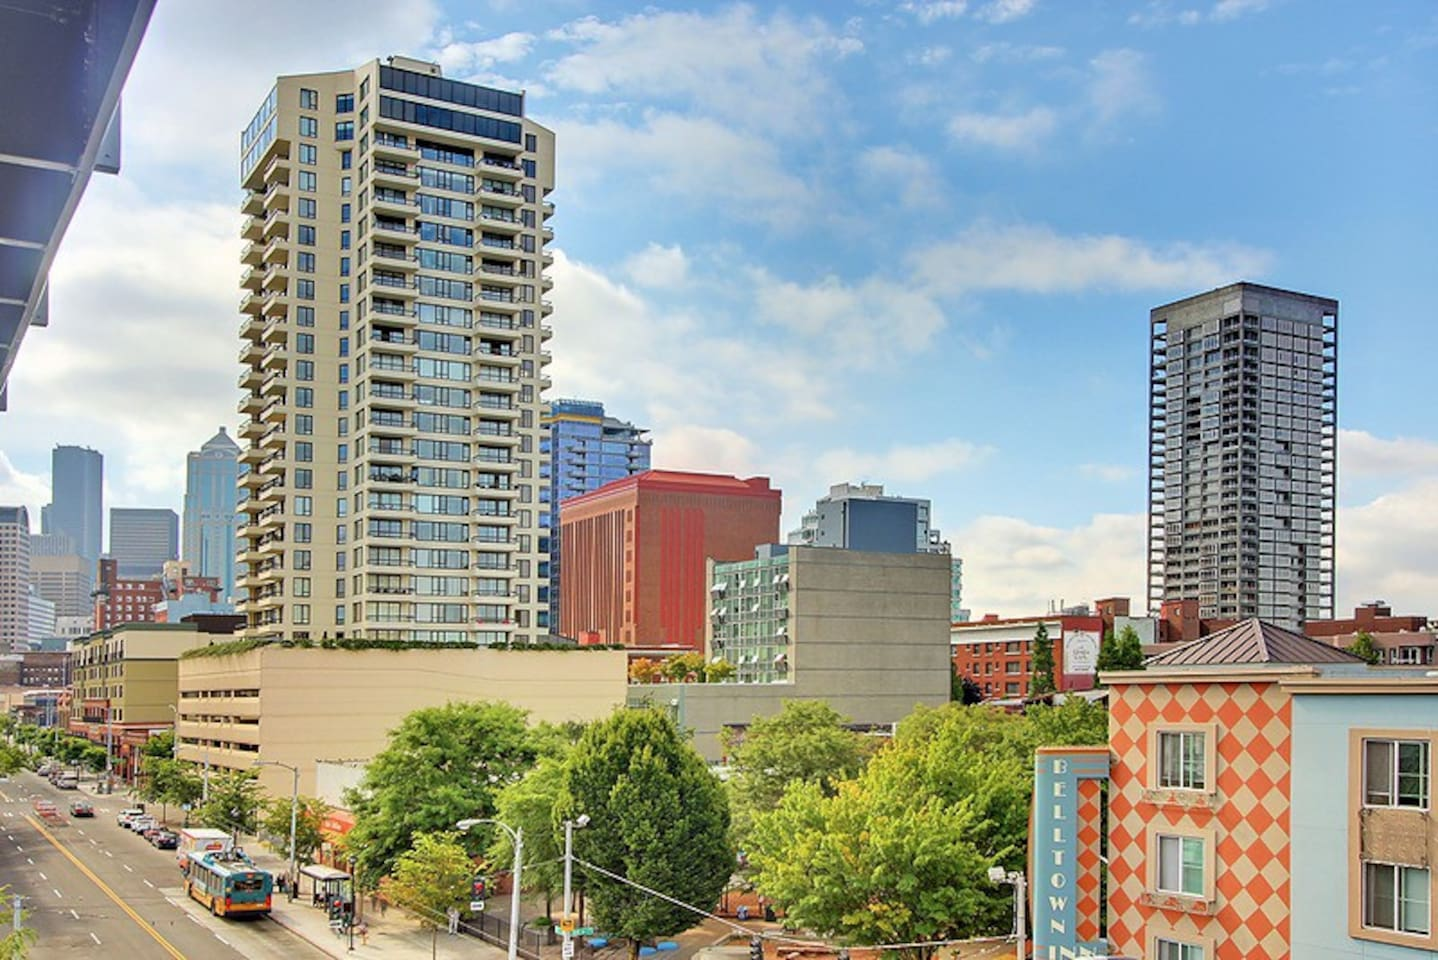 Take in the sights and sounds of the city from your own private balcony